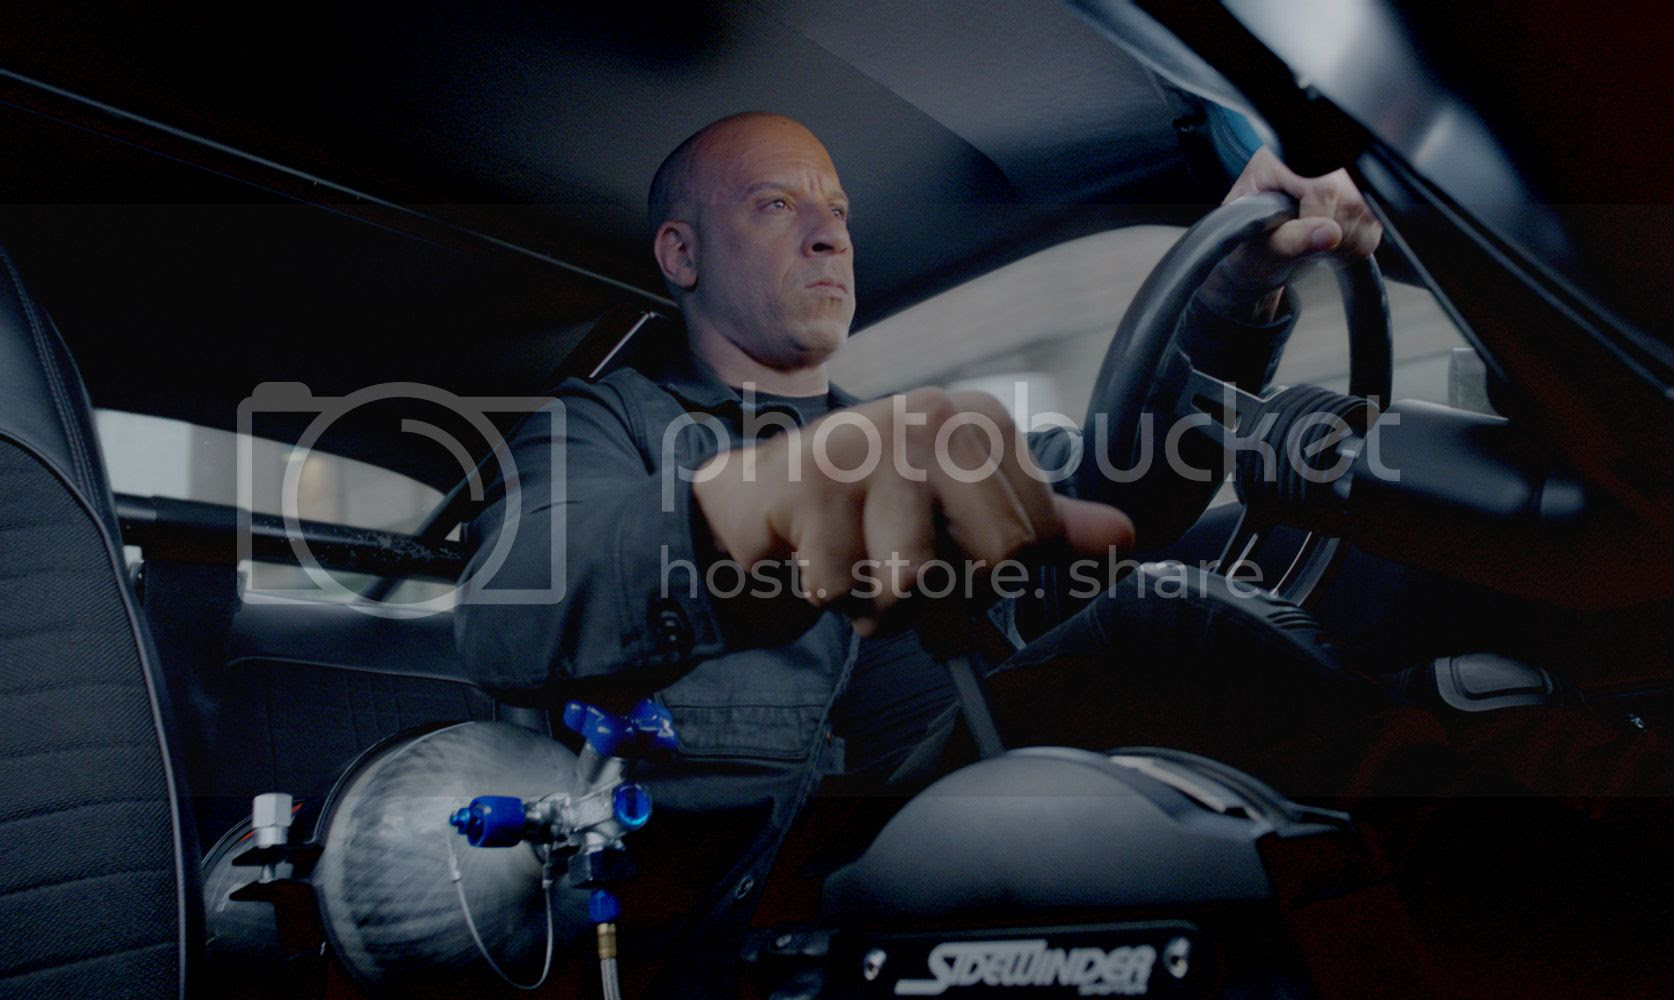 fast-and-furious8-movie-review-01.jpg